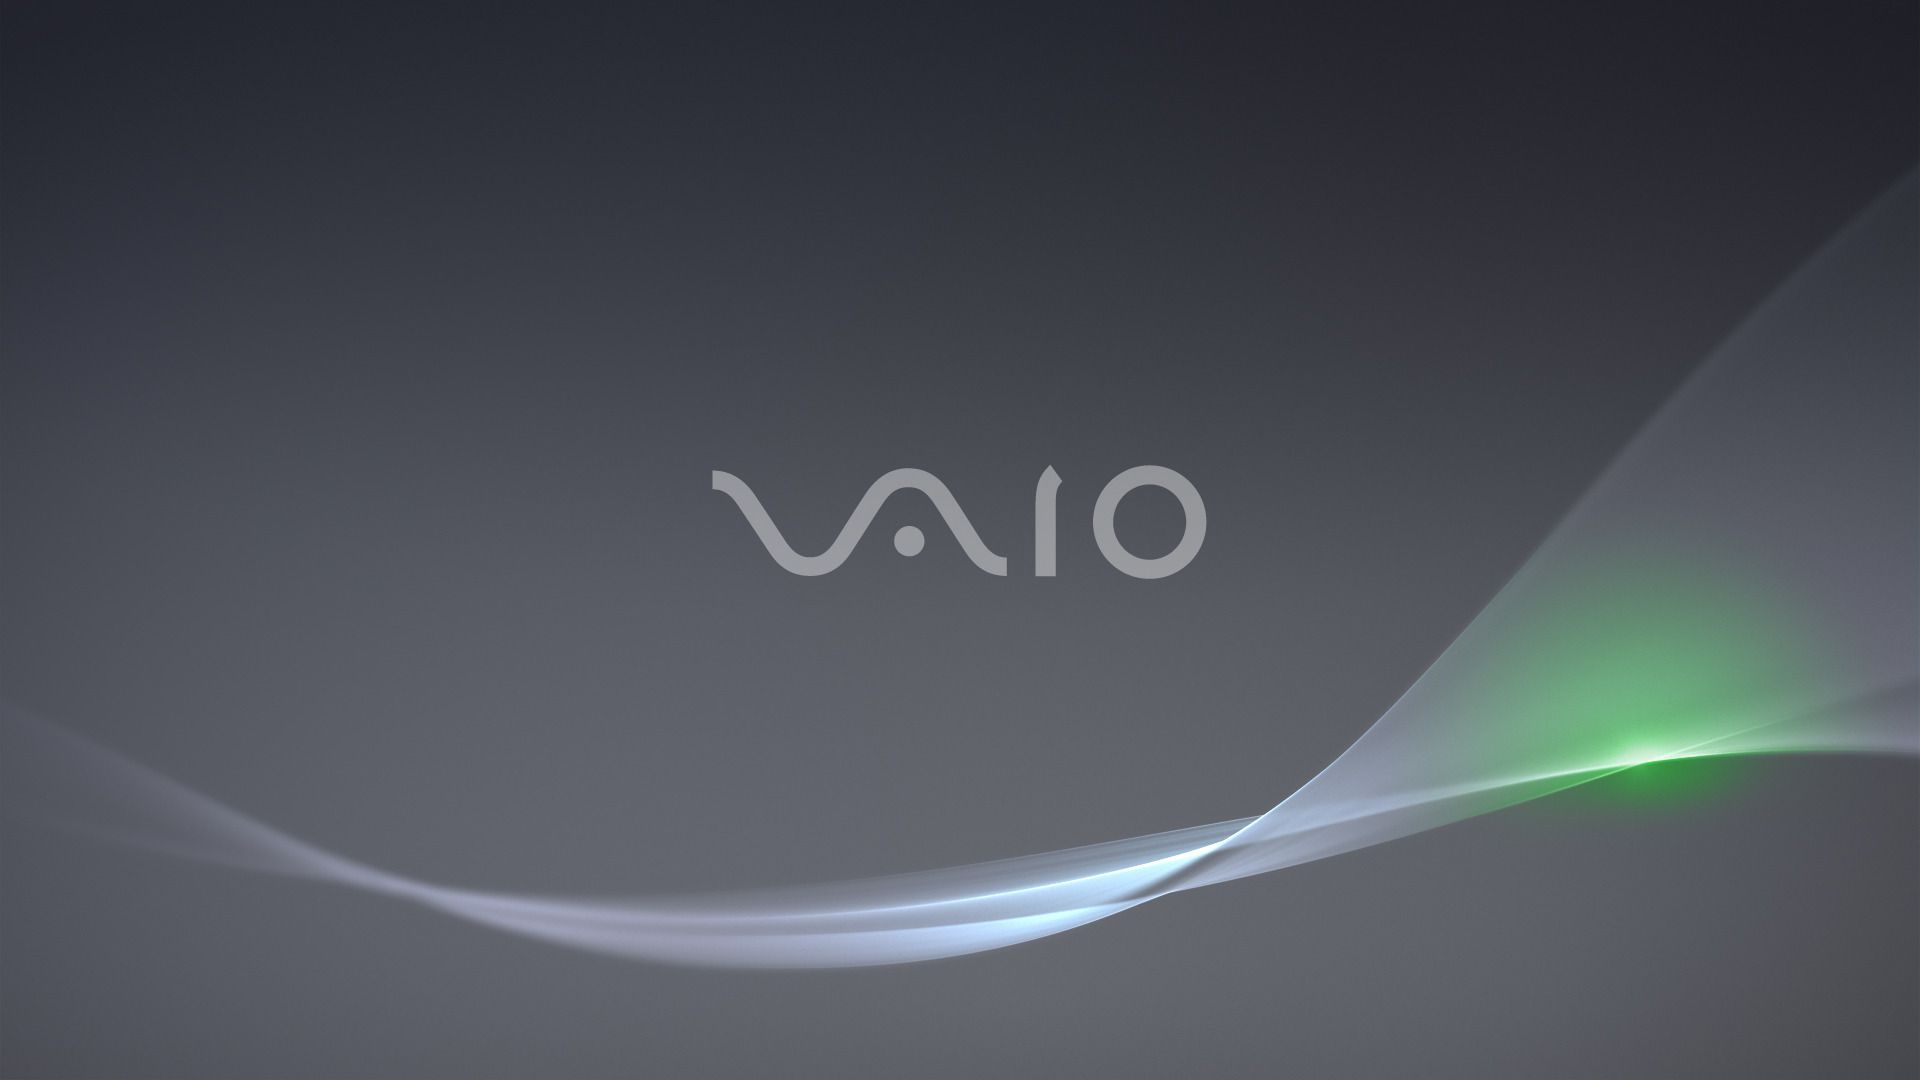 Sony Vaio Wallpaper